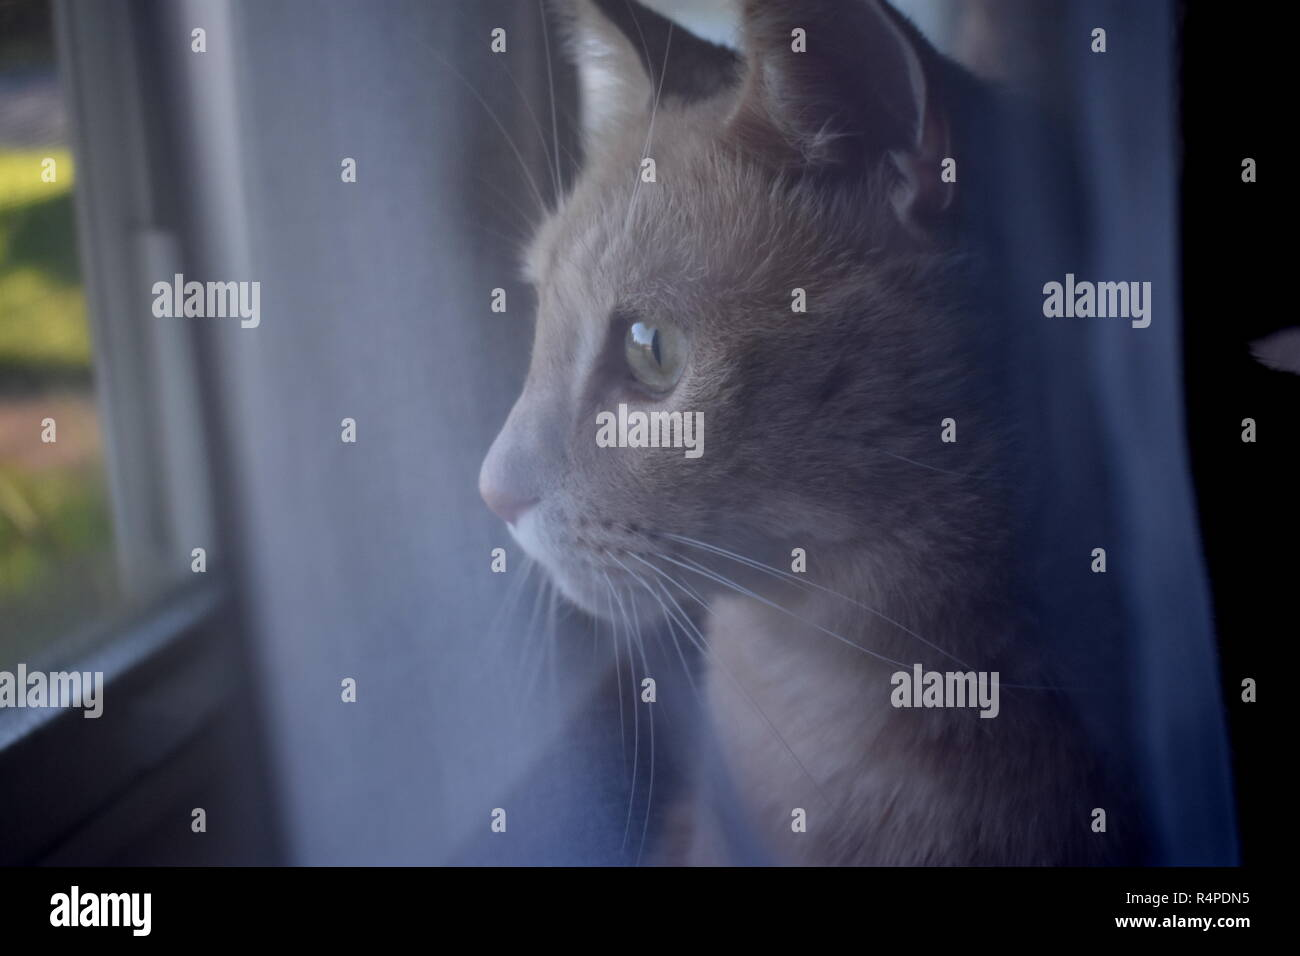 Cat Behind Curtain - Stock Image